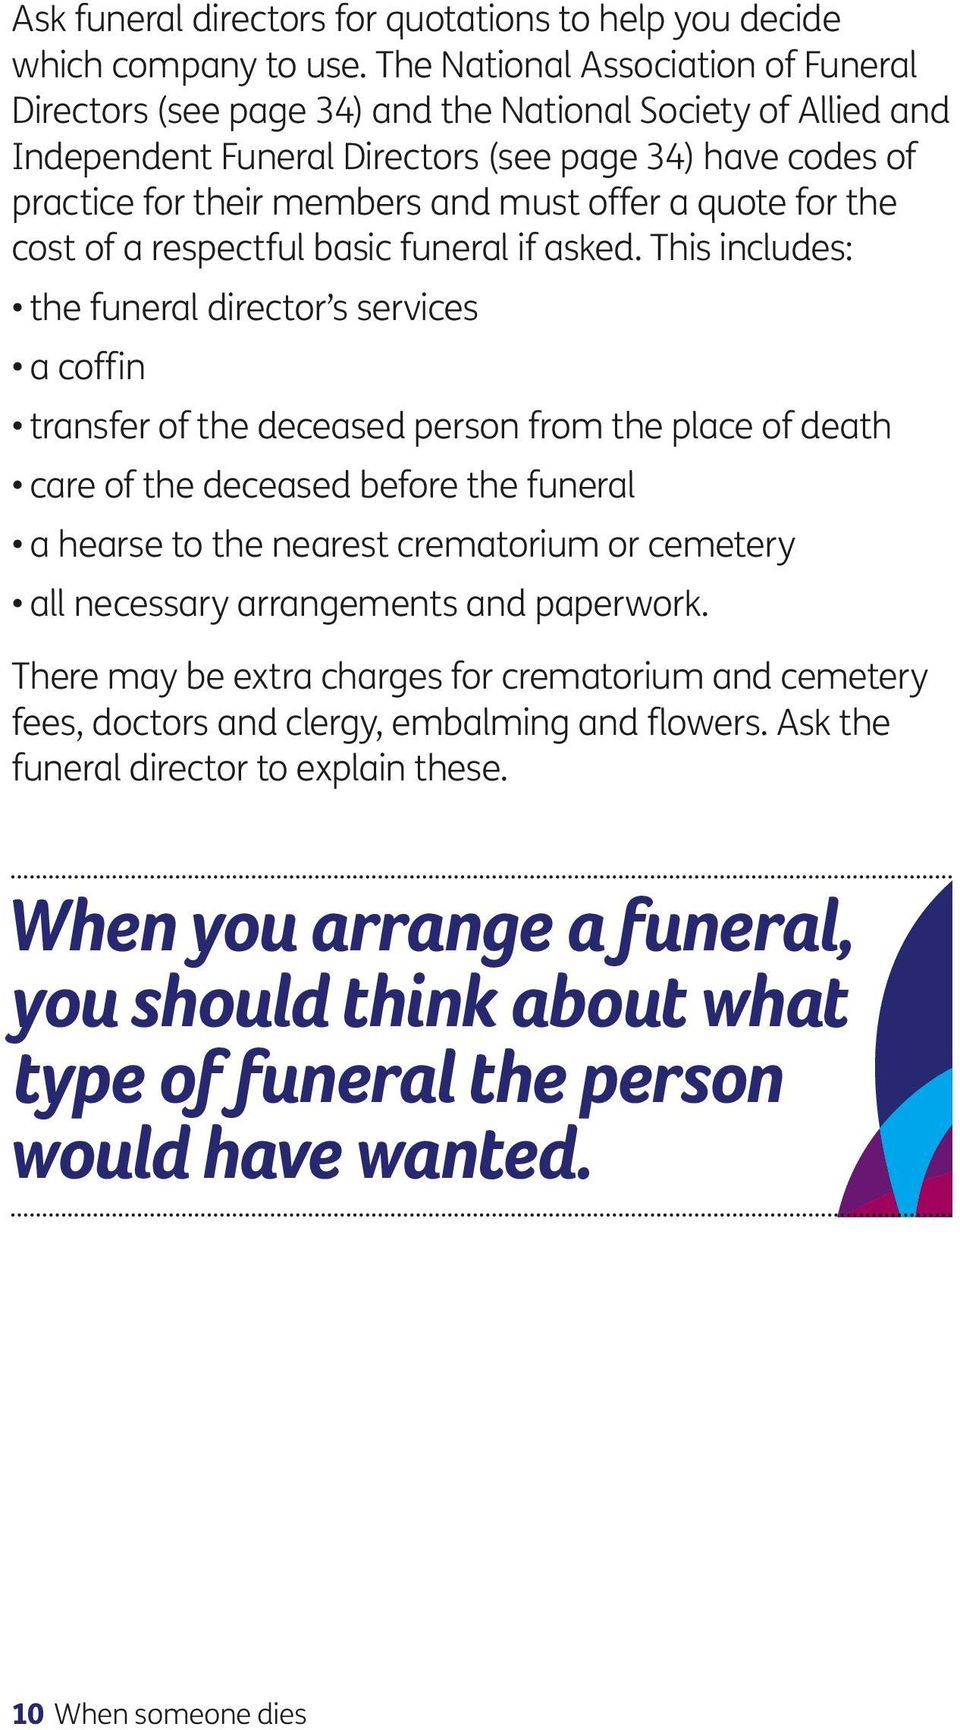 a quote for the cost of a respectful basic funeral if asked.